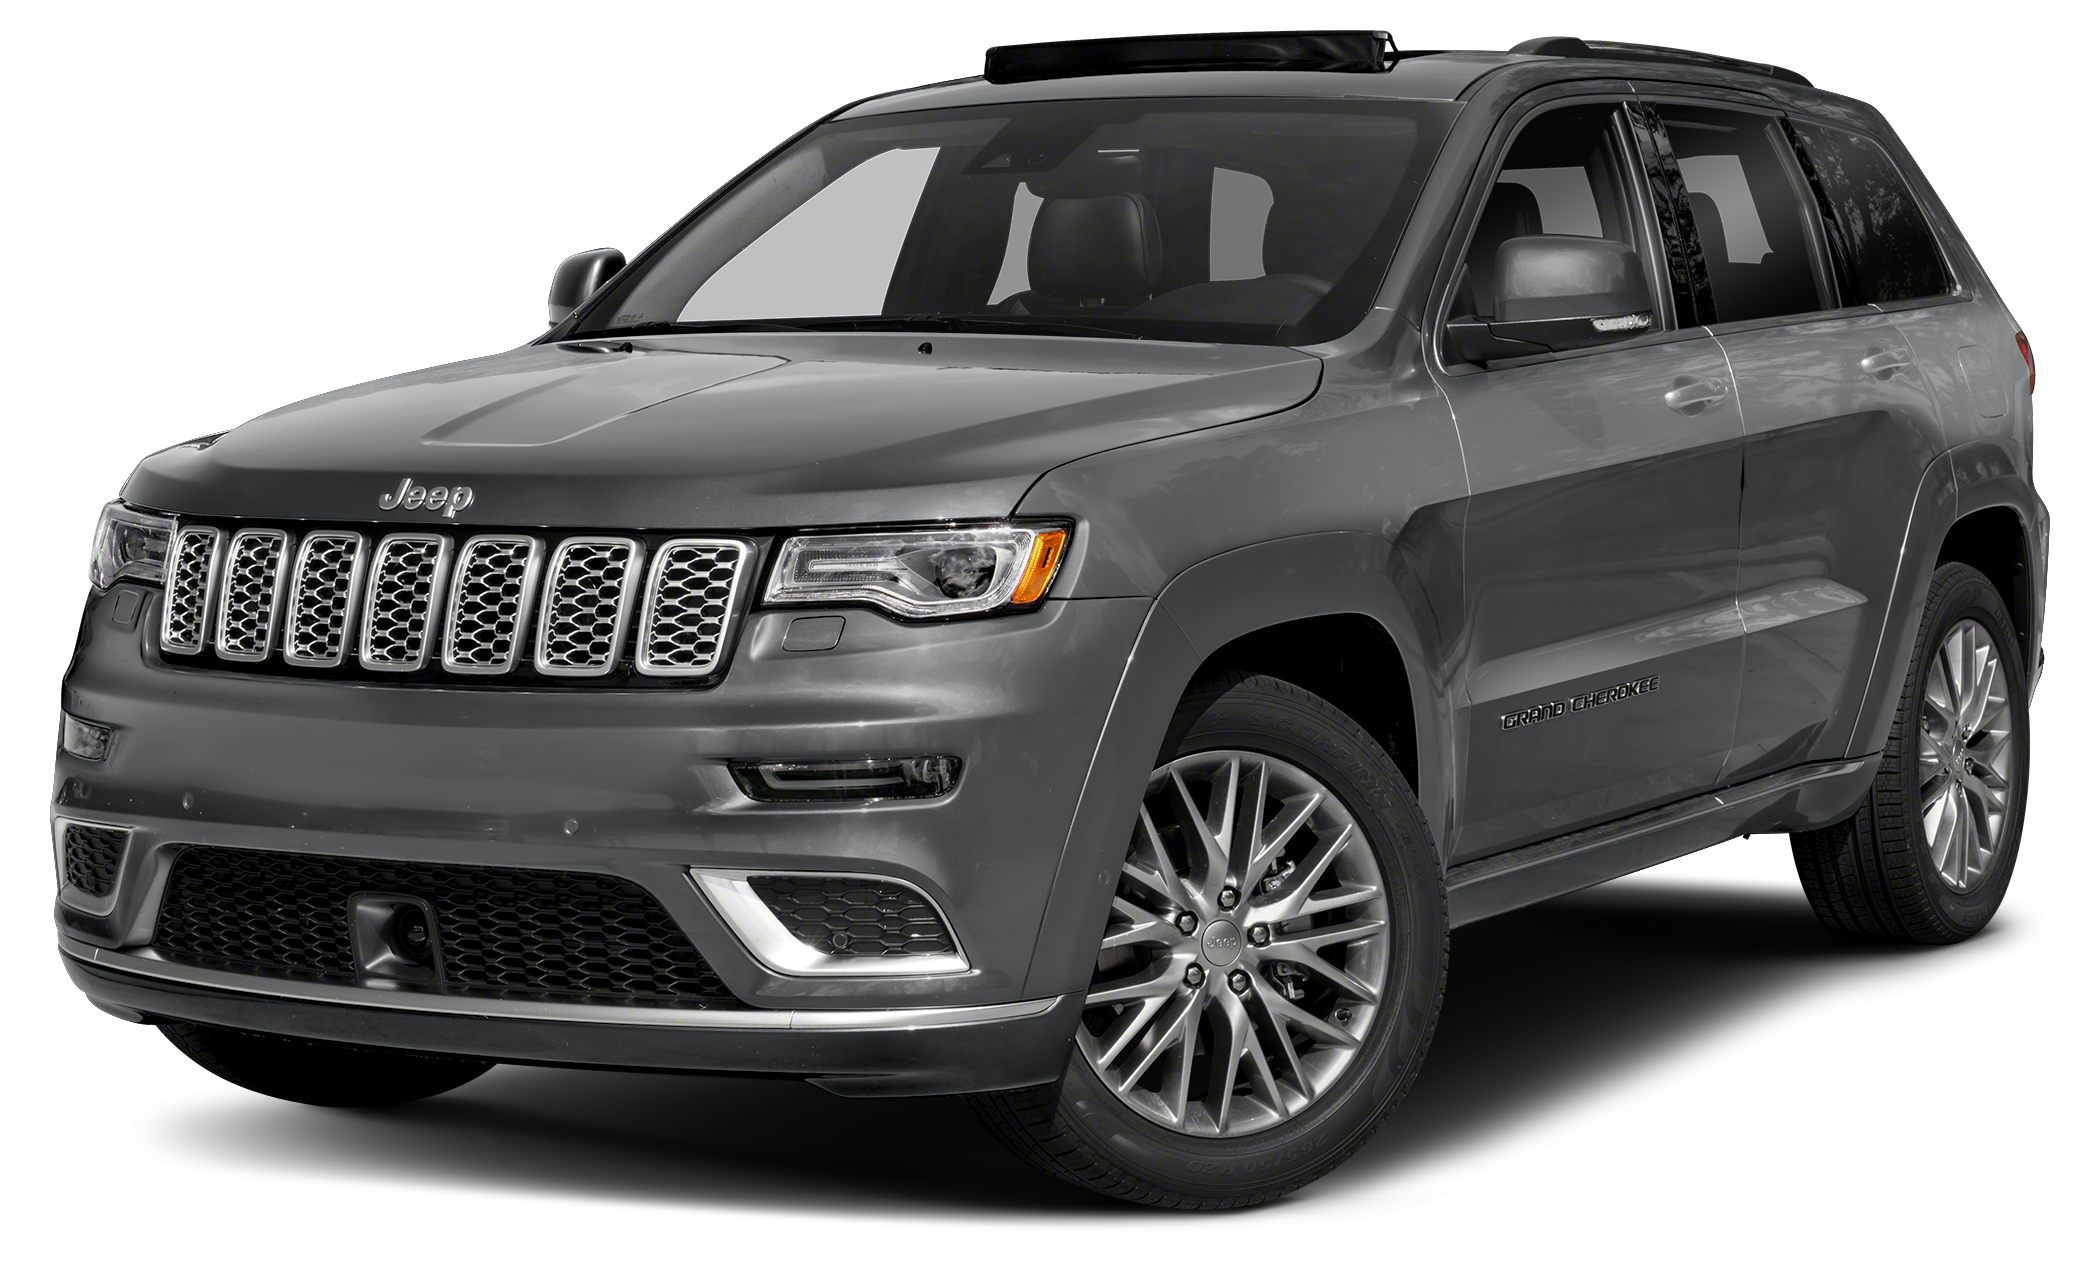 2018 Jeep Grand Cherokee Summit A real head turner There is no better time than now to buy this